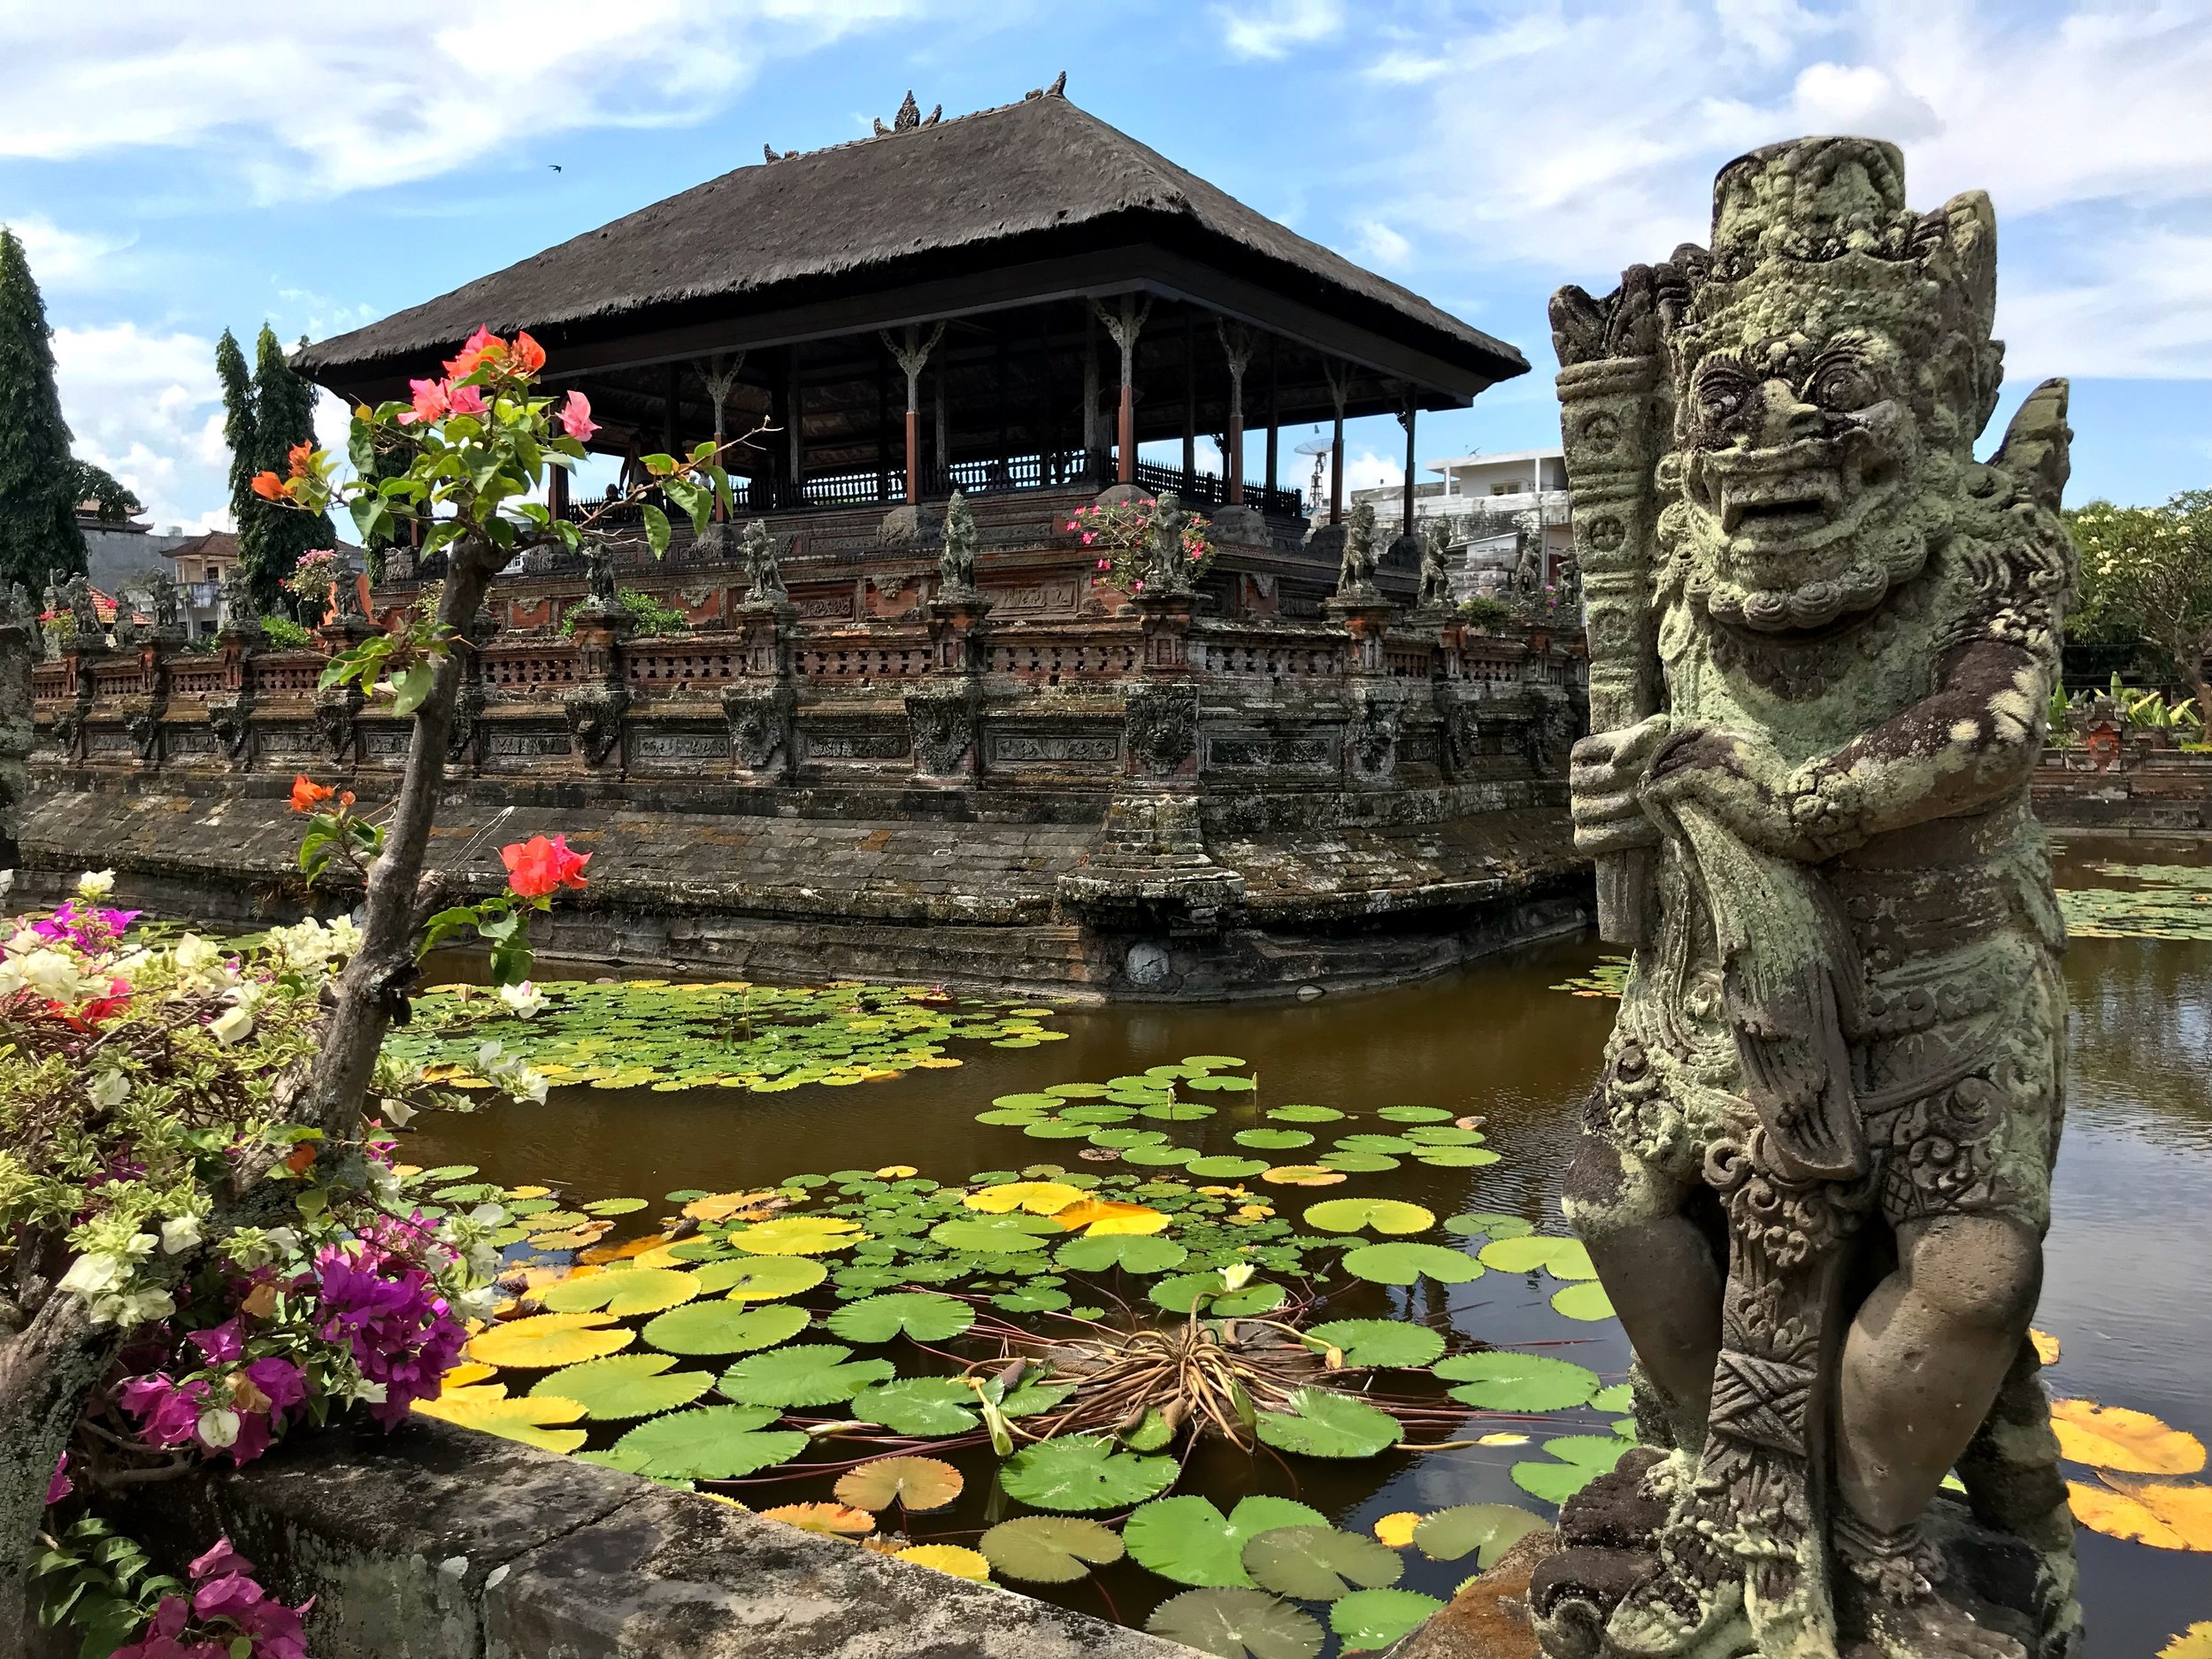 Monstrous statues, lily-covered pools of water and pavilions filled with comic book-like artwork come together at Klungkung